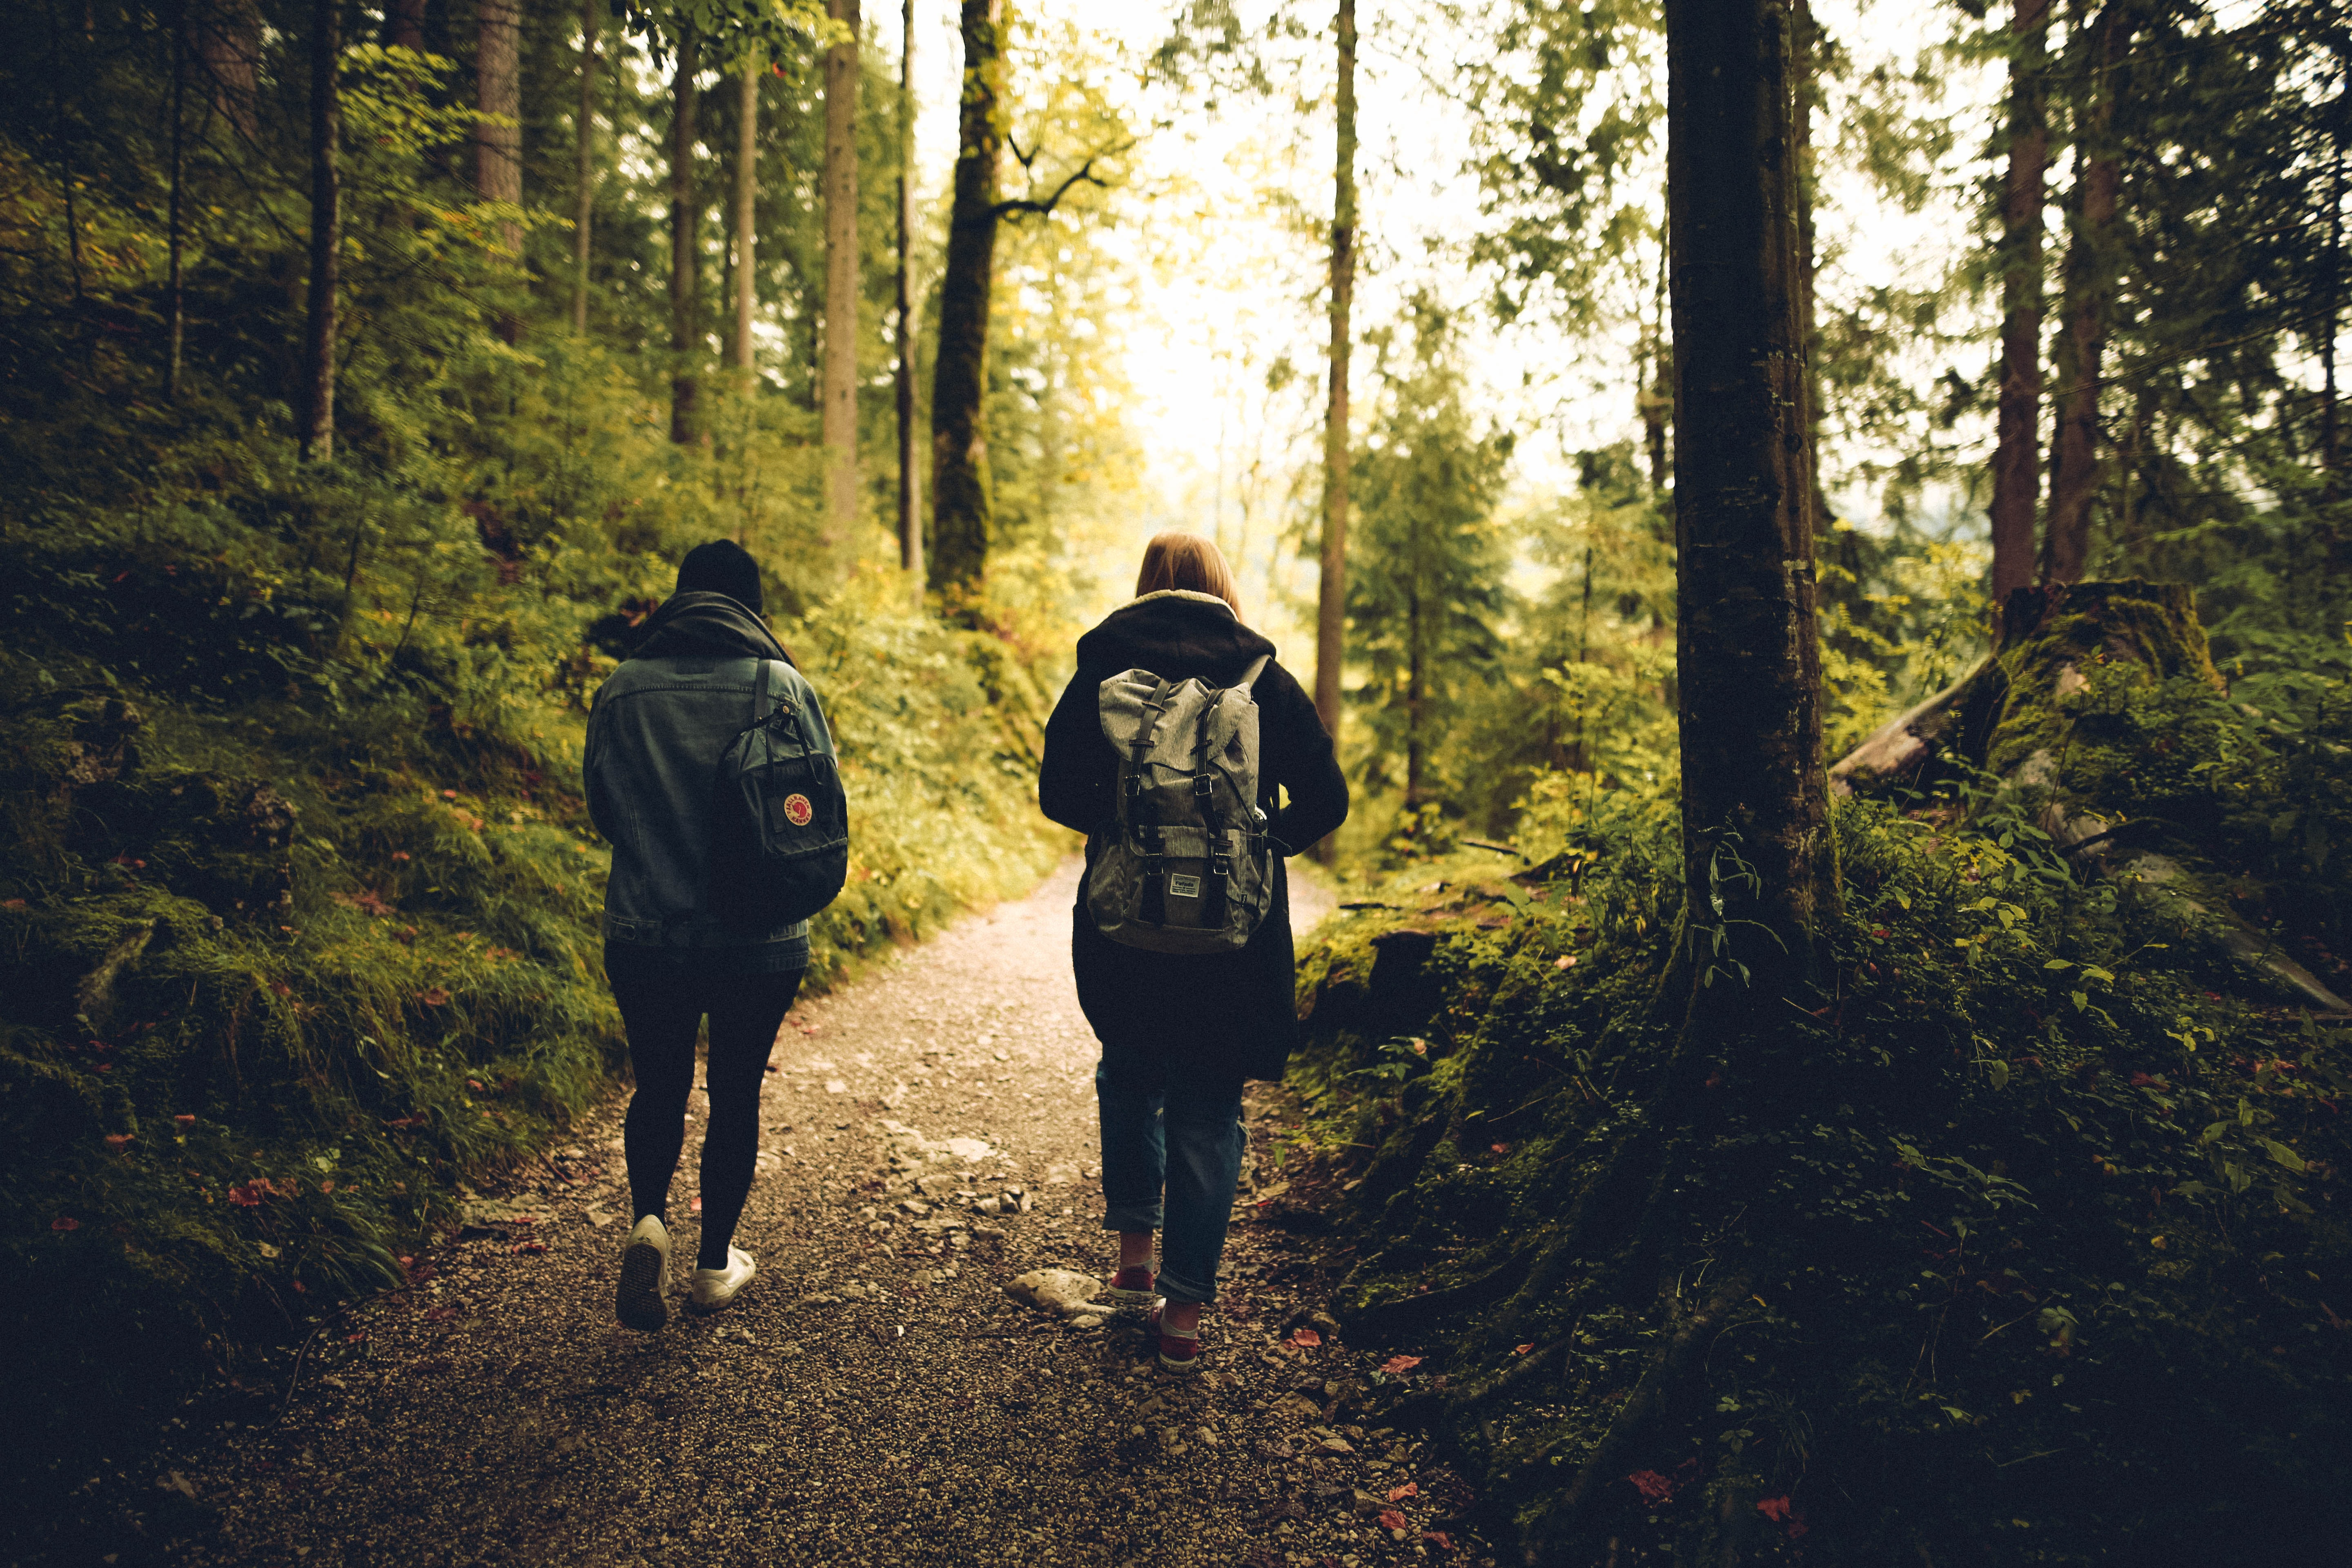 Just 6 months of walking may reverse cognitive decline